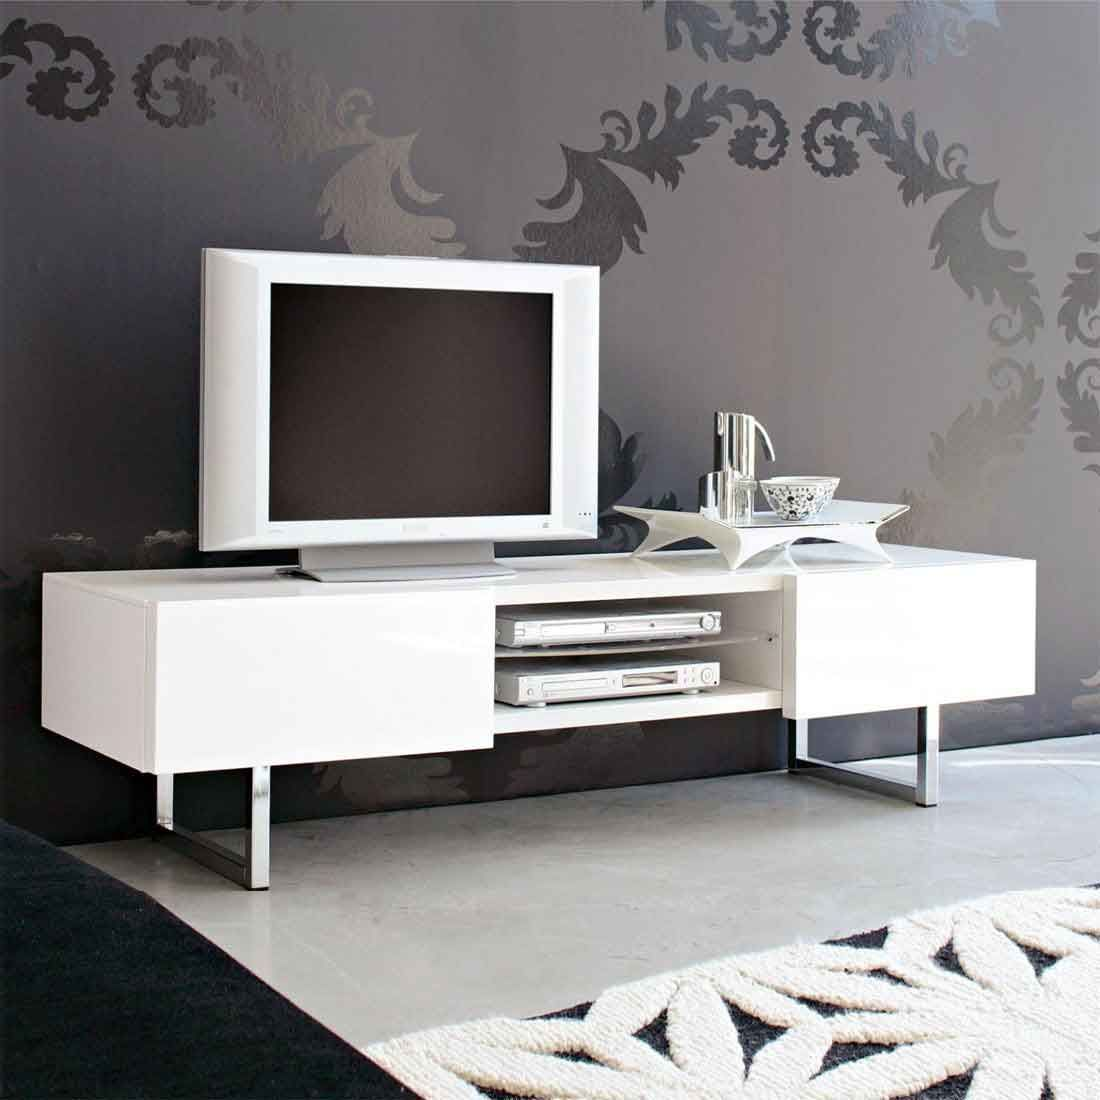 White Tv Stand Ideas. White Tv Stand Ideas   Home Design   D cor   Pinterest   White tv